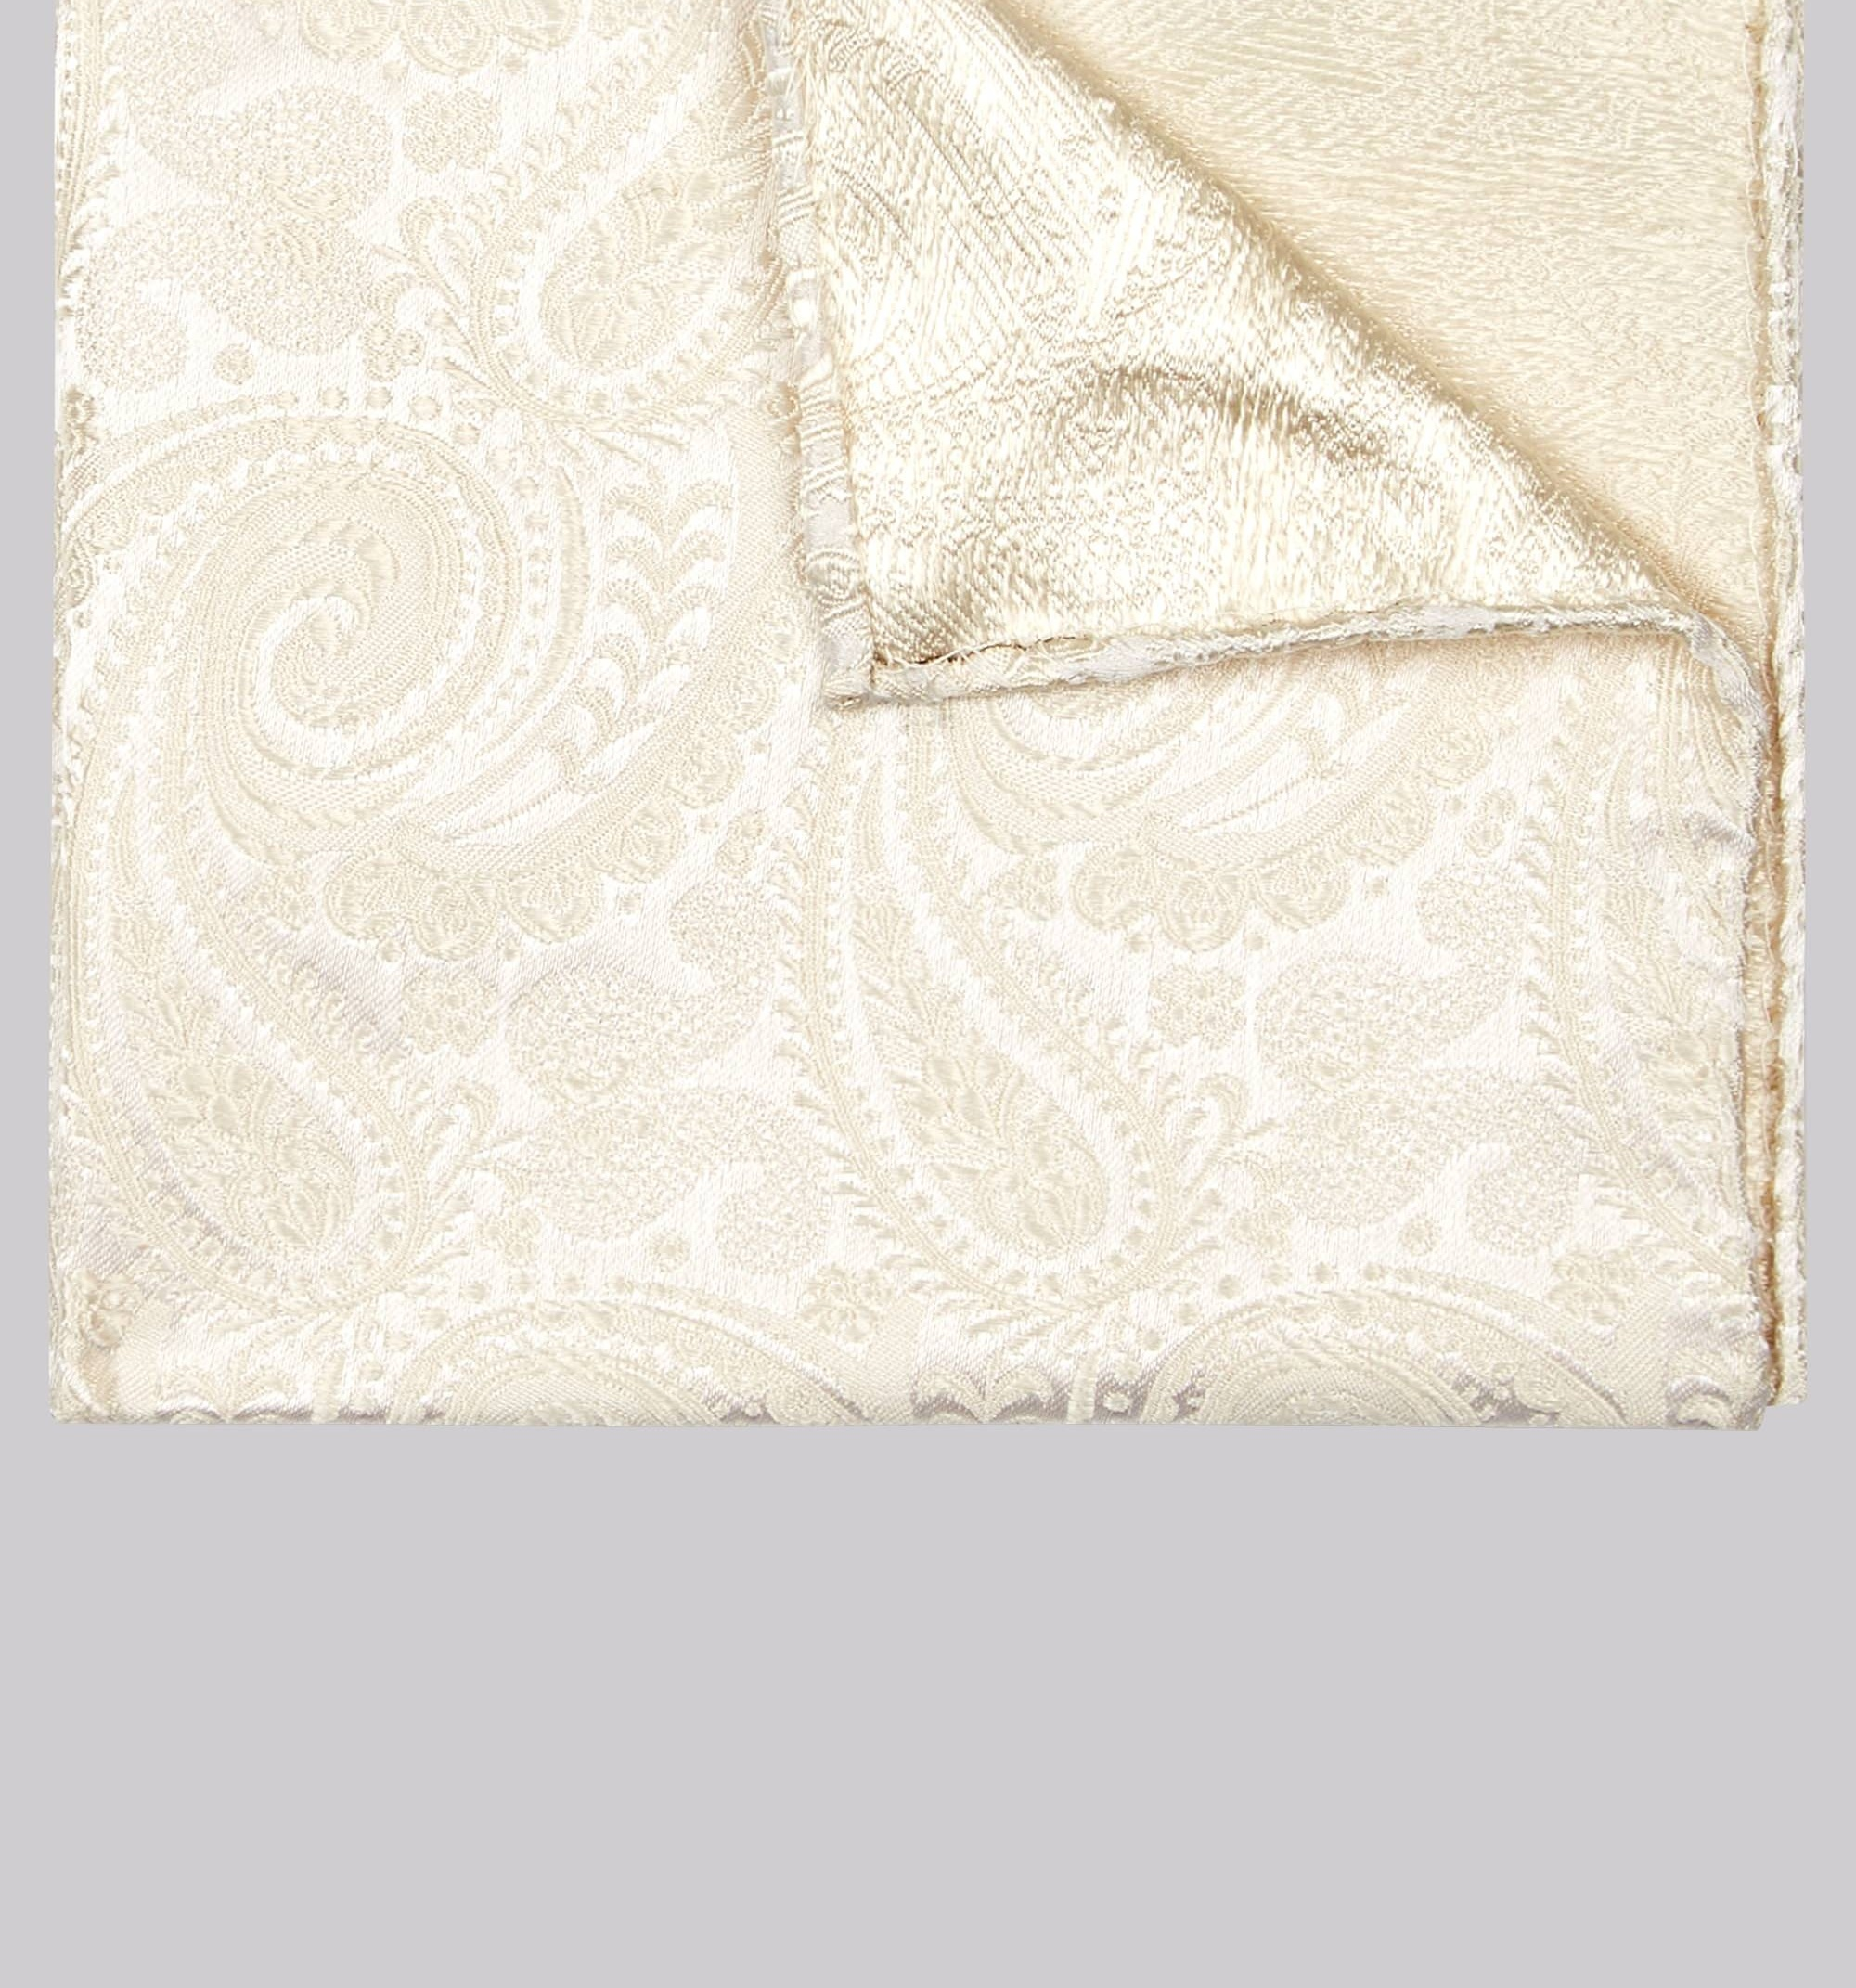 Moss Bros Moss 1851 Cream Paisley Silk Pocket Square